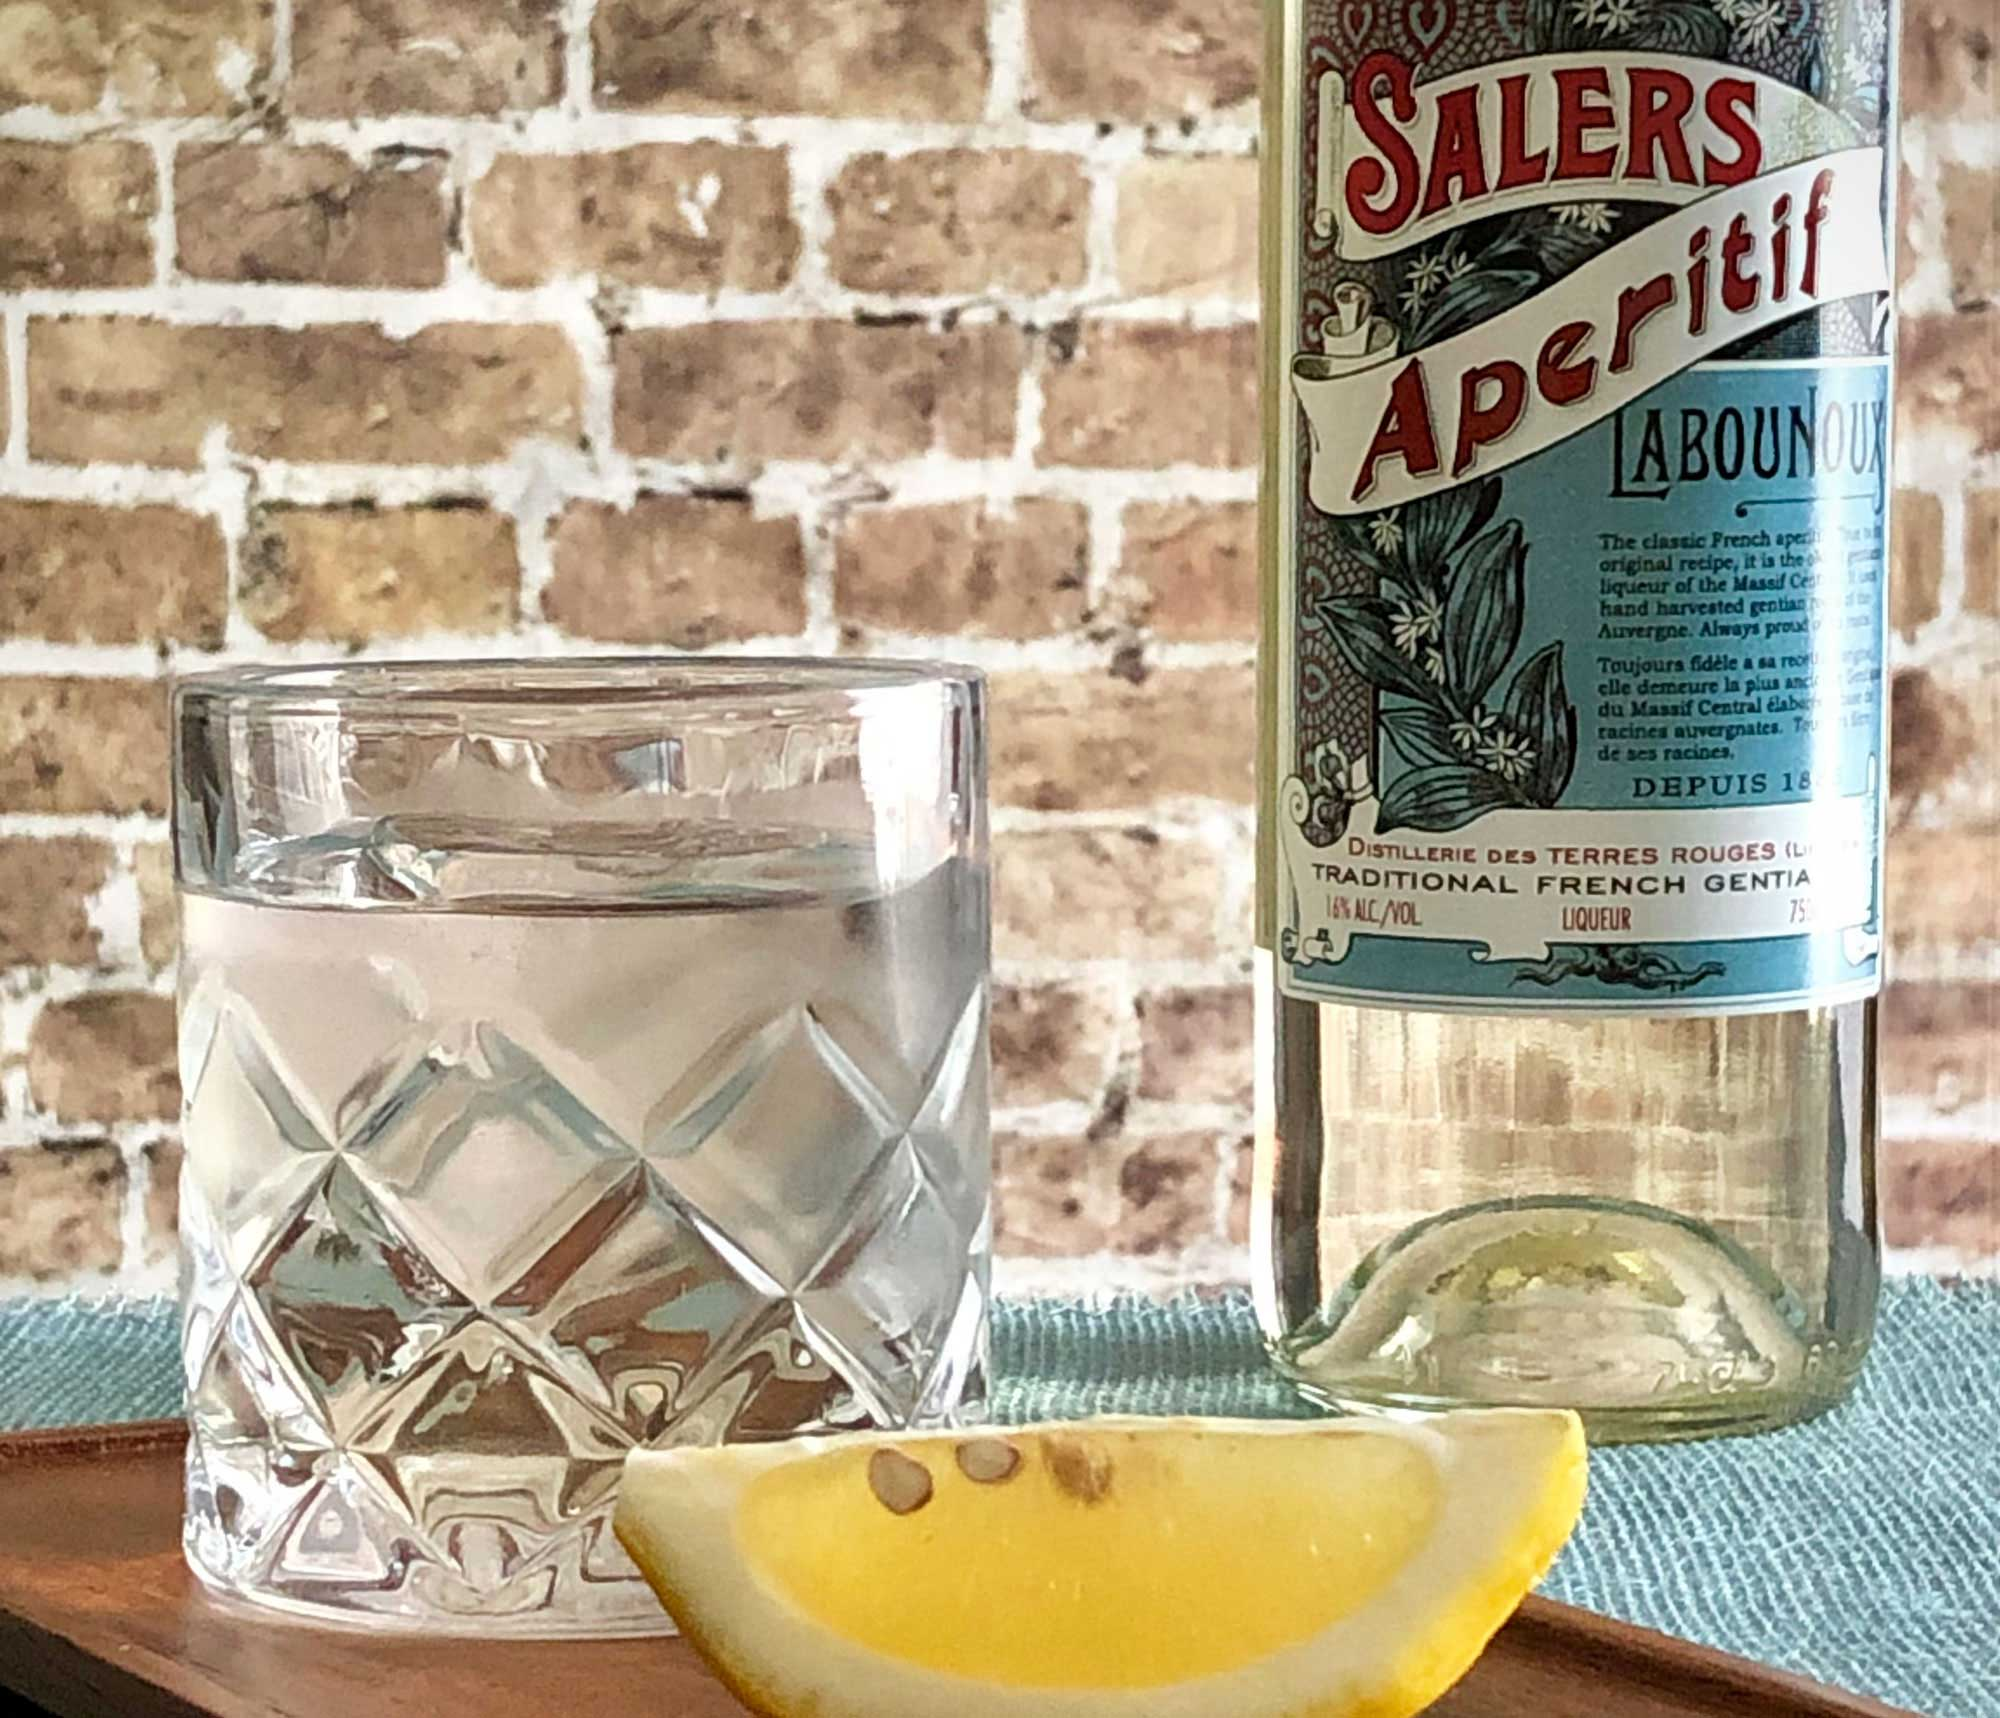 An example of the Salers Aperitif, the mixed drink (cocktail) featuring Salers Gentian Apéritif; photo by Lee Edwards